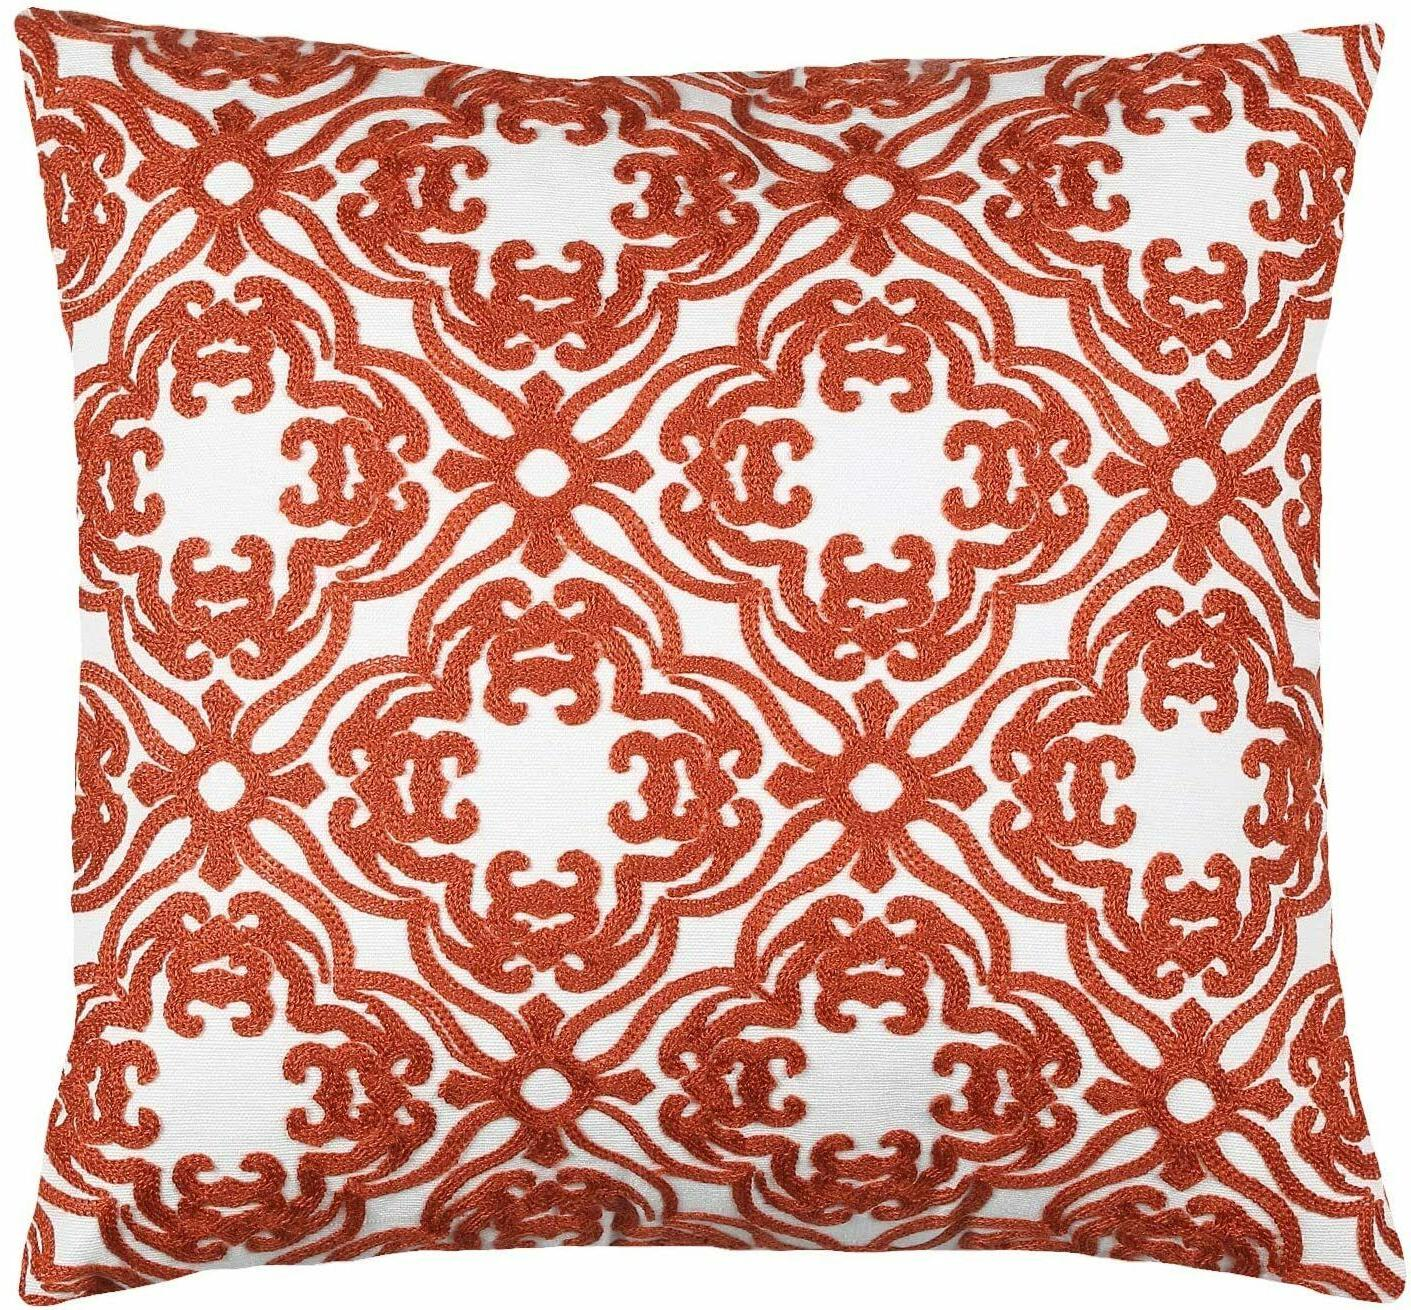 2 Blend Decorative Cushion Covers 18x18 inches